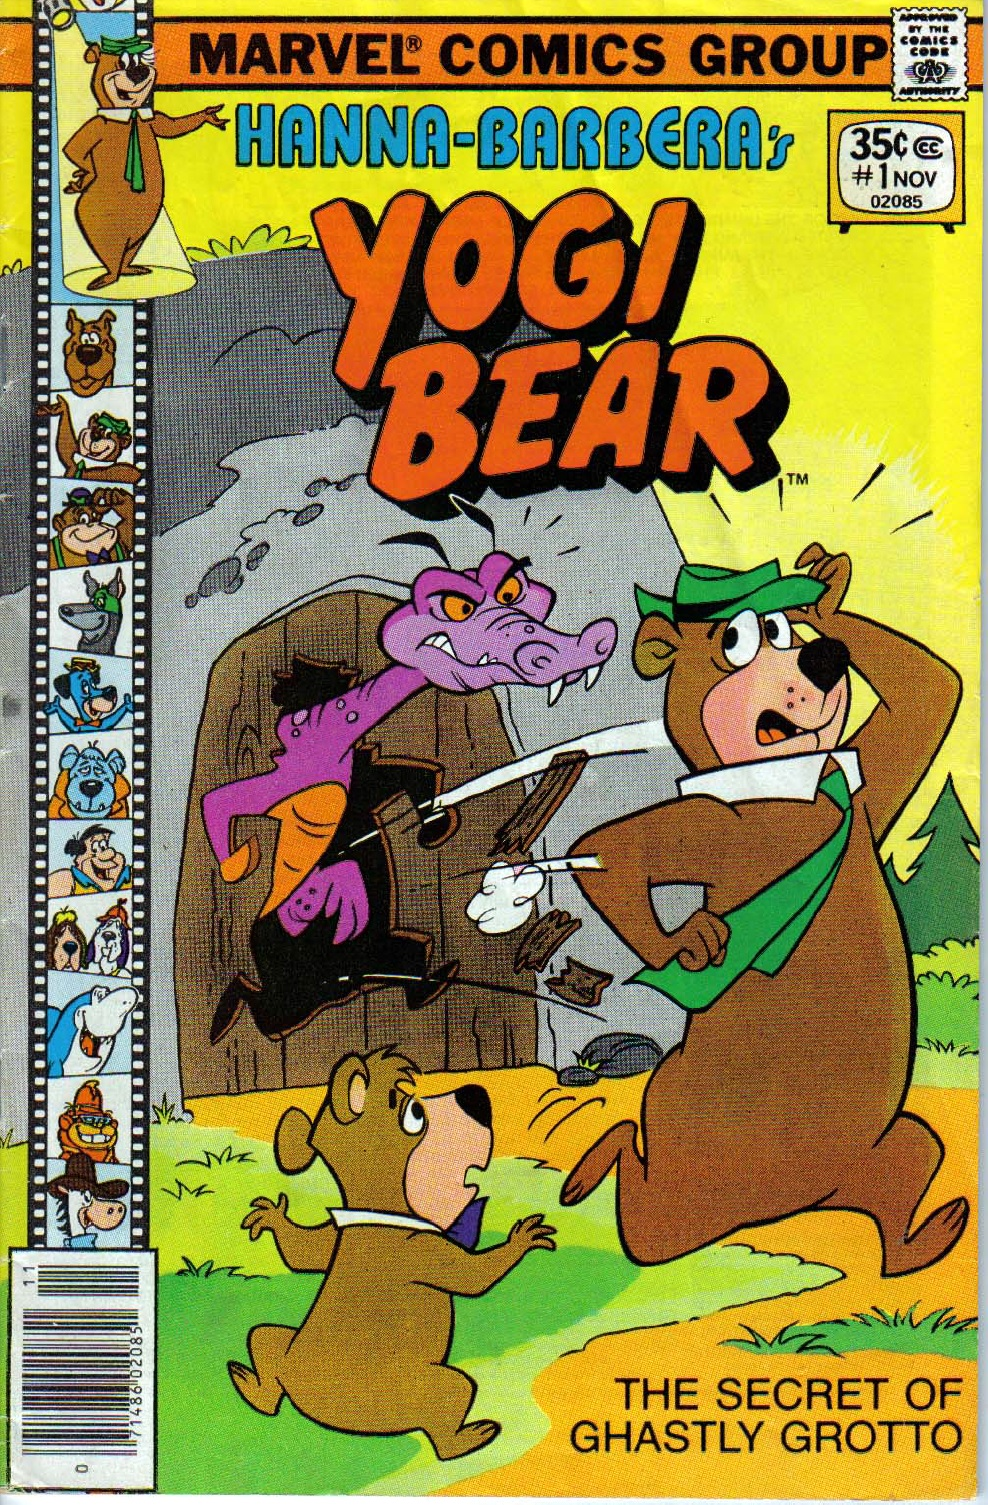 Yogi Bear (Marvel Comics)